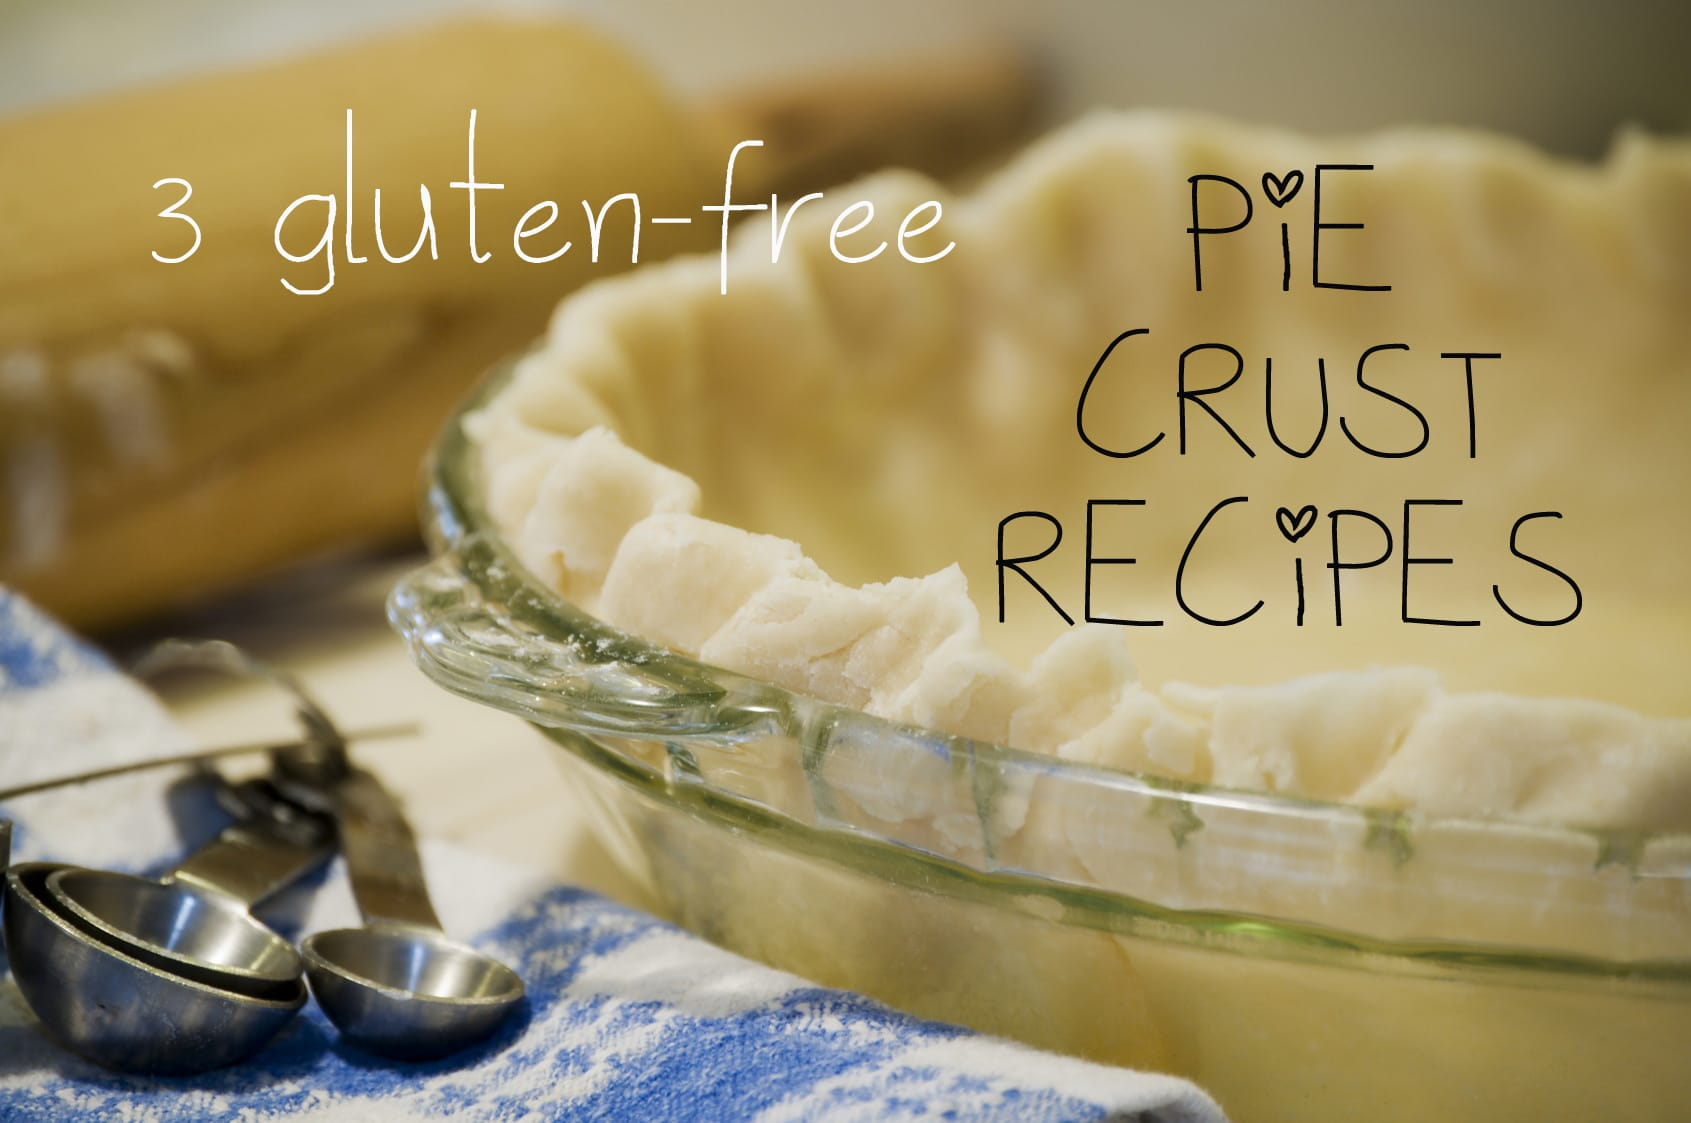 3 Gluten-Free Pie Crust Recipesimage preview